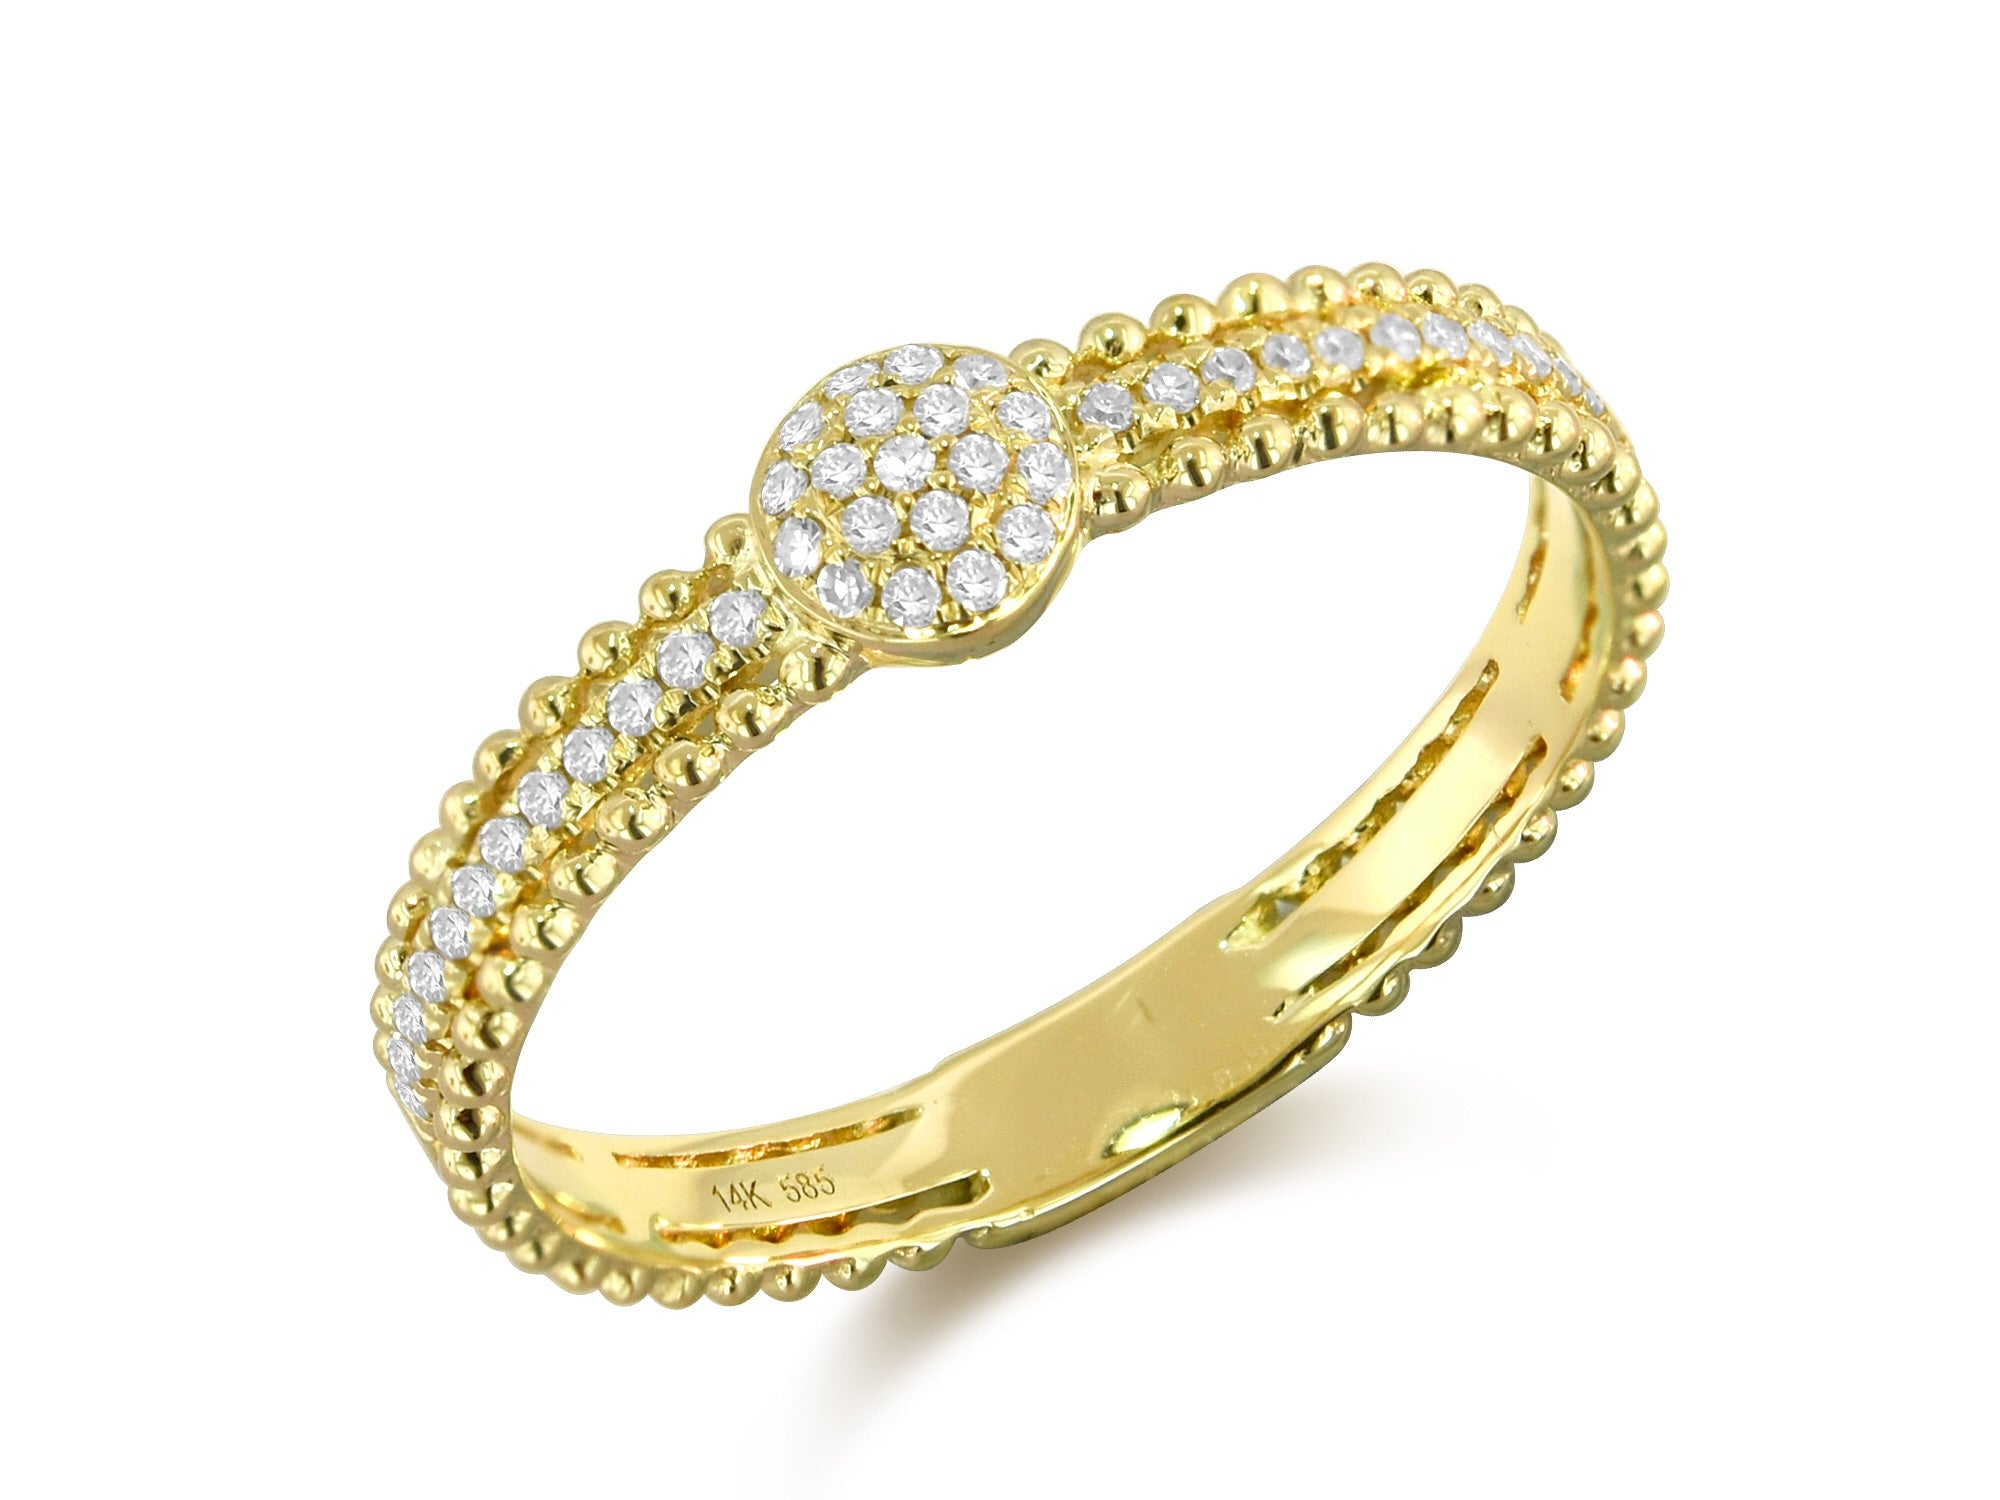 14K Yellow Gold Pave Diamond Lace Ring - Ice Motif